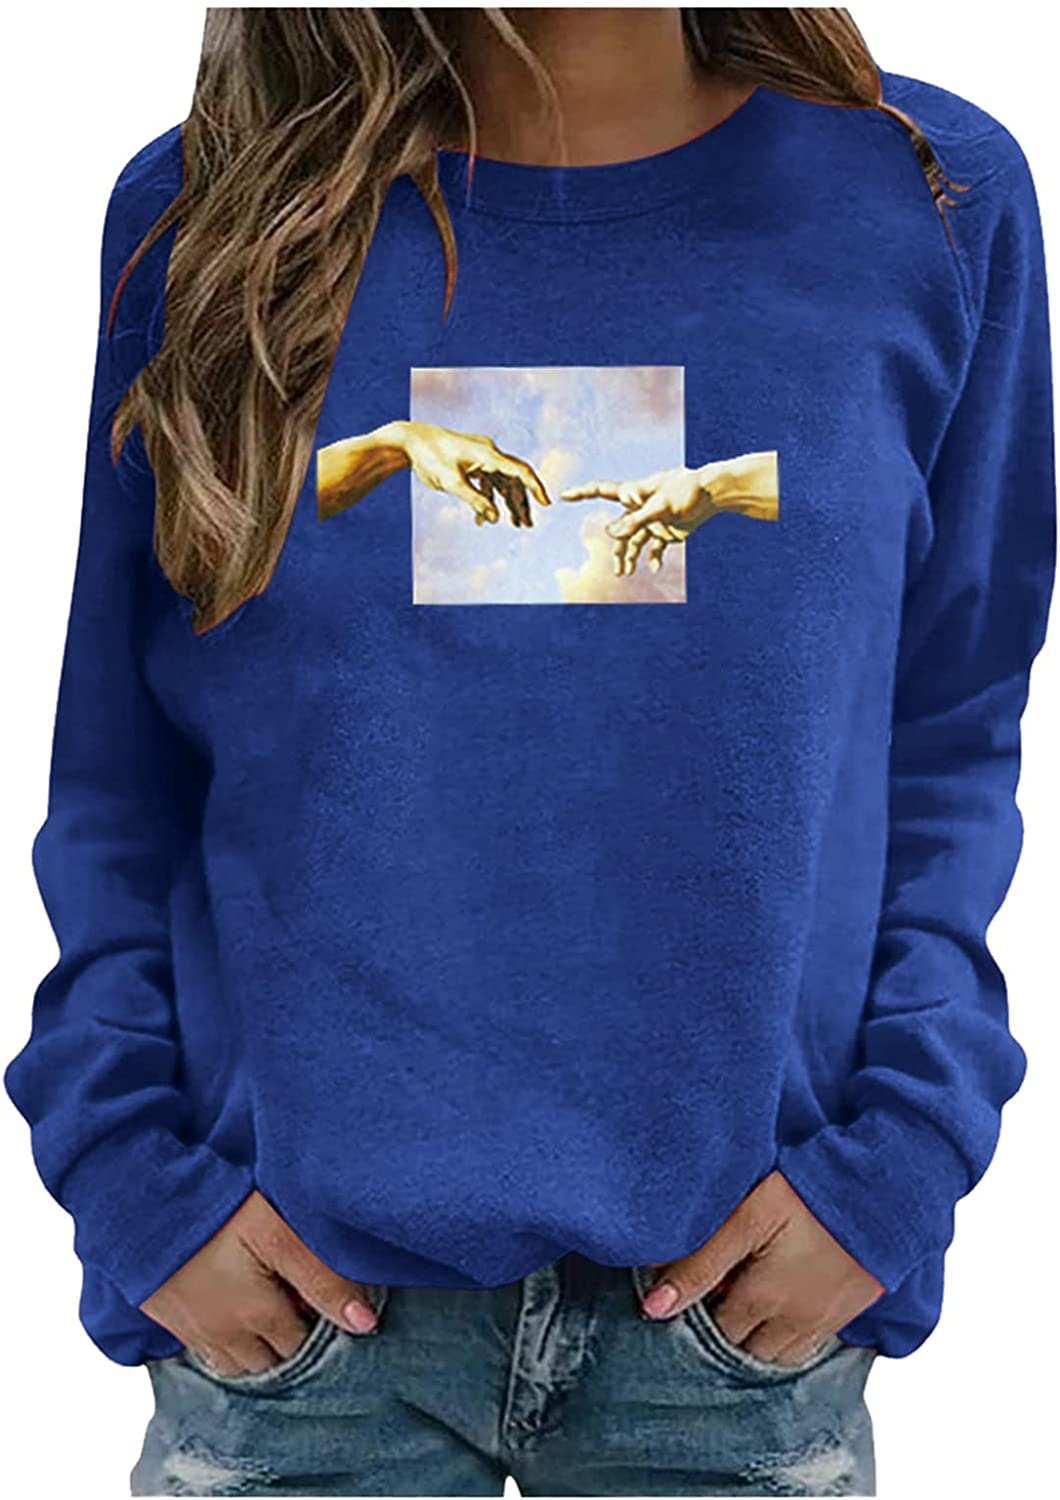 fannyouth Womens Pullover Tops,Sweatshirt Pullover for Women Vintage Pattern Long Sleeve Casual Crewneck Sweatshirts Top